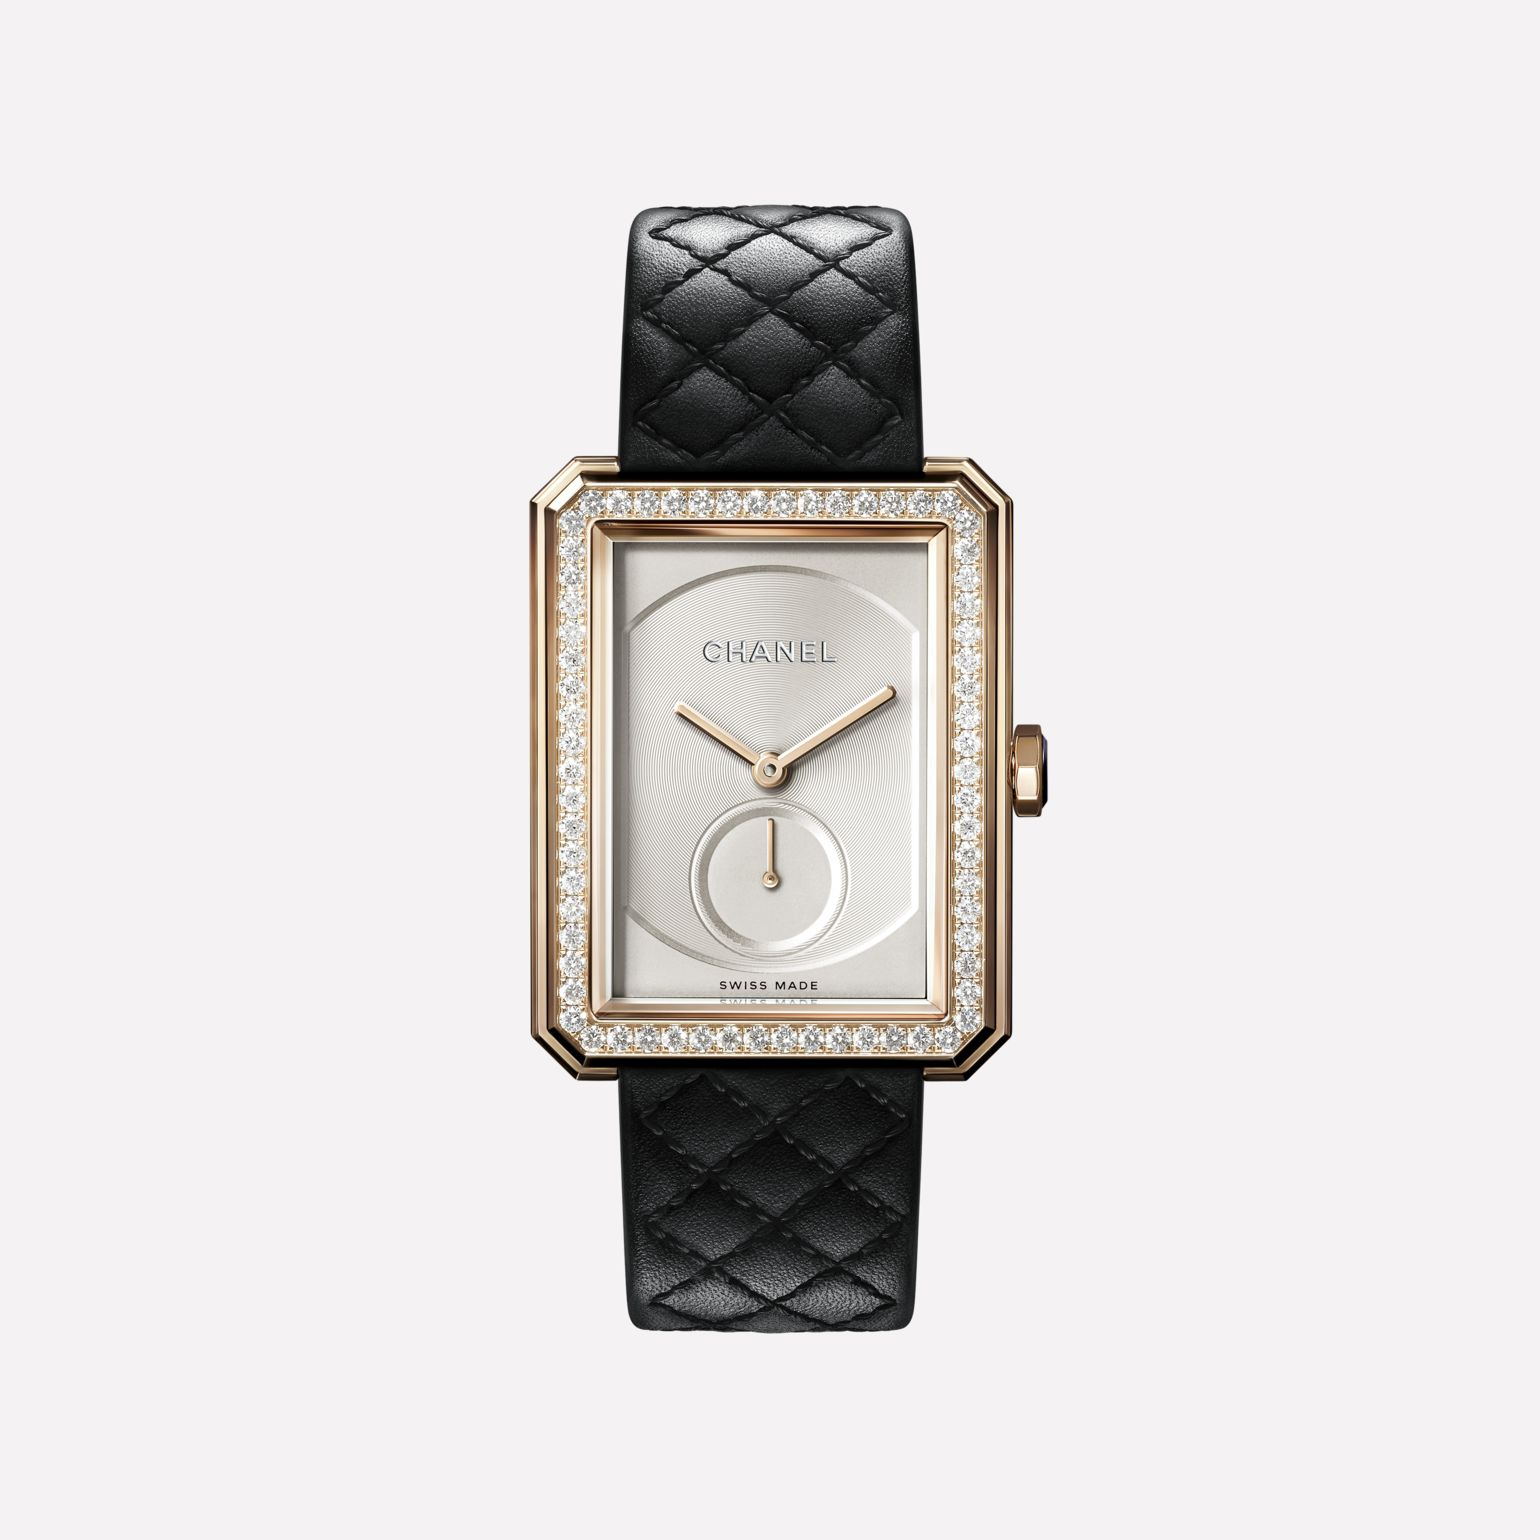 BOY·FRIEND Watch Large version, BEIGE GOLD and diamonds, quilted pattern calfskin strap